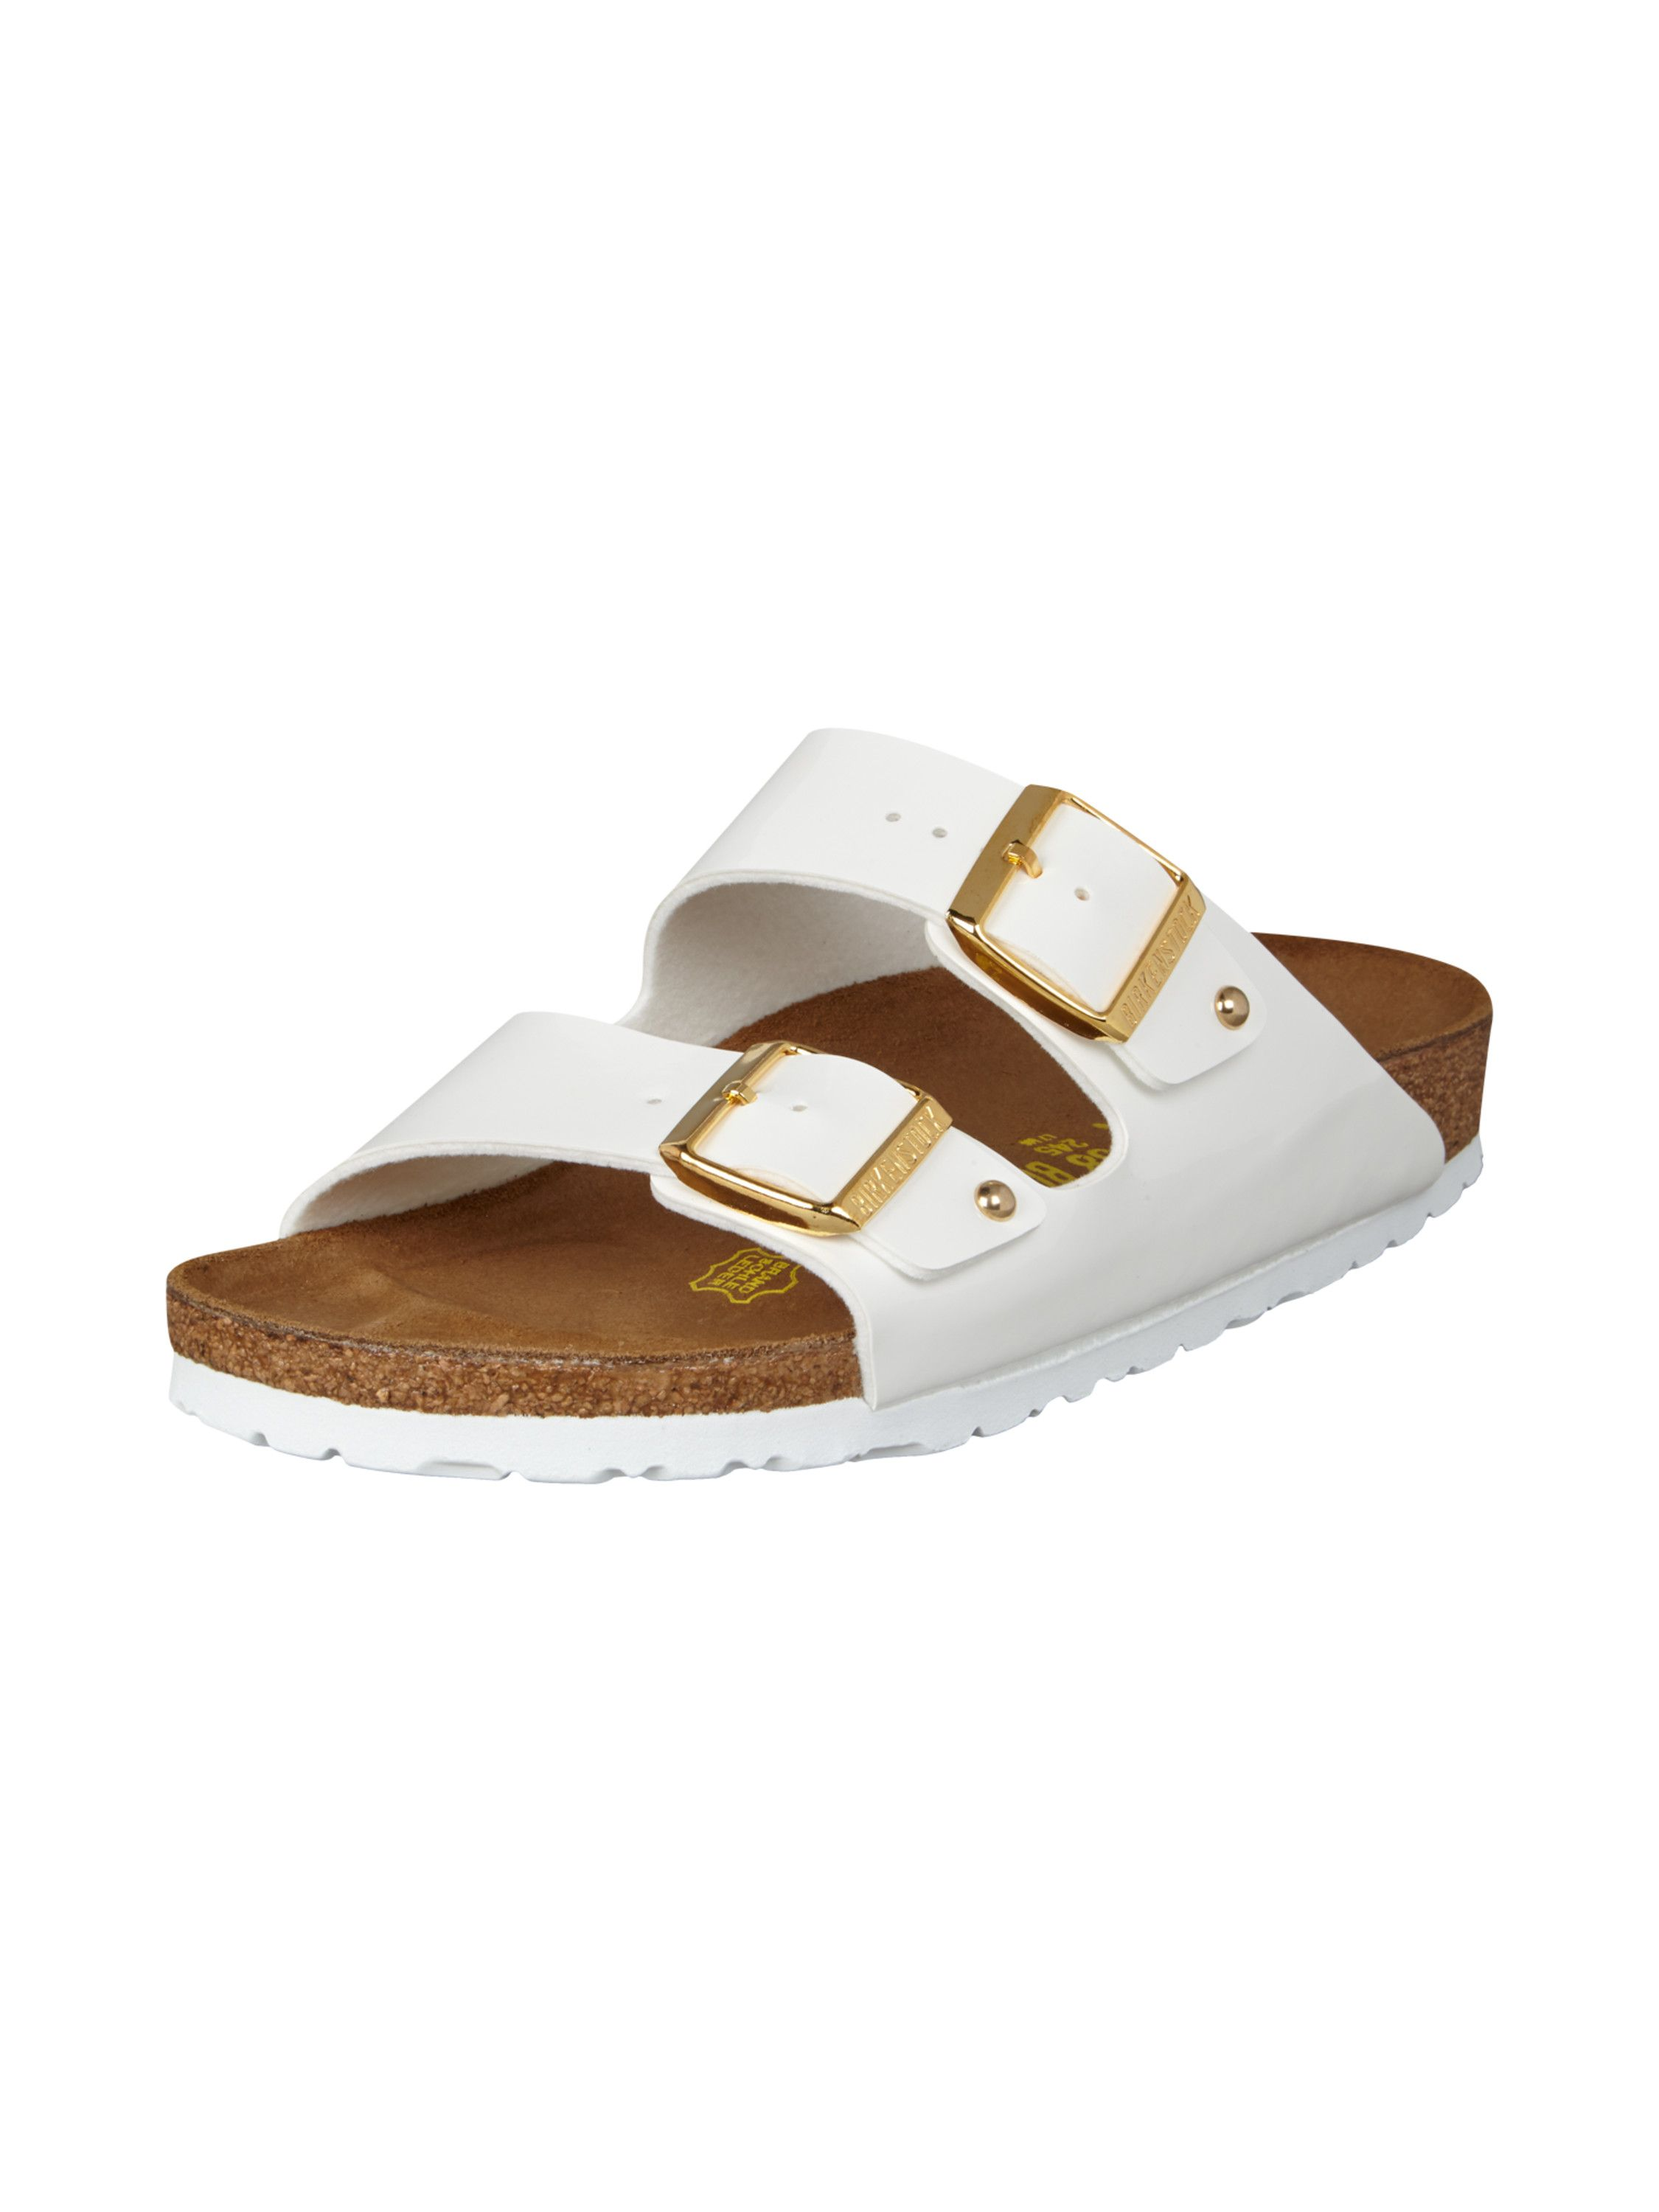 BIRKENSTOCK Sandalen mit Riemen in Lackleder Optik in Weiß